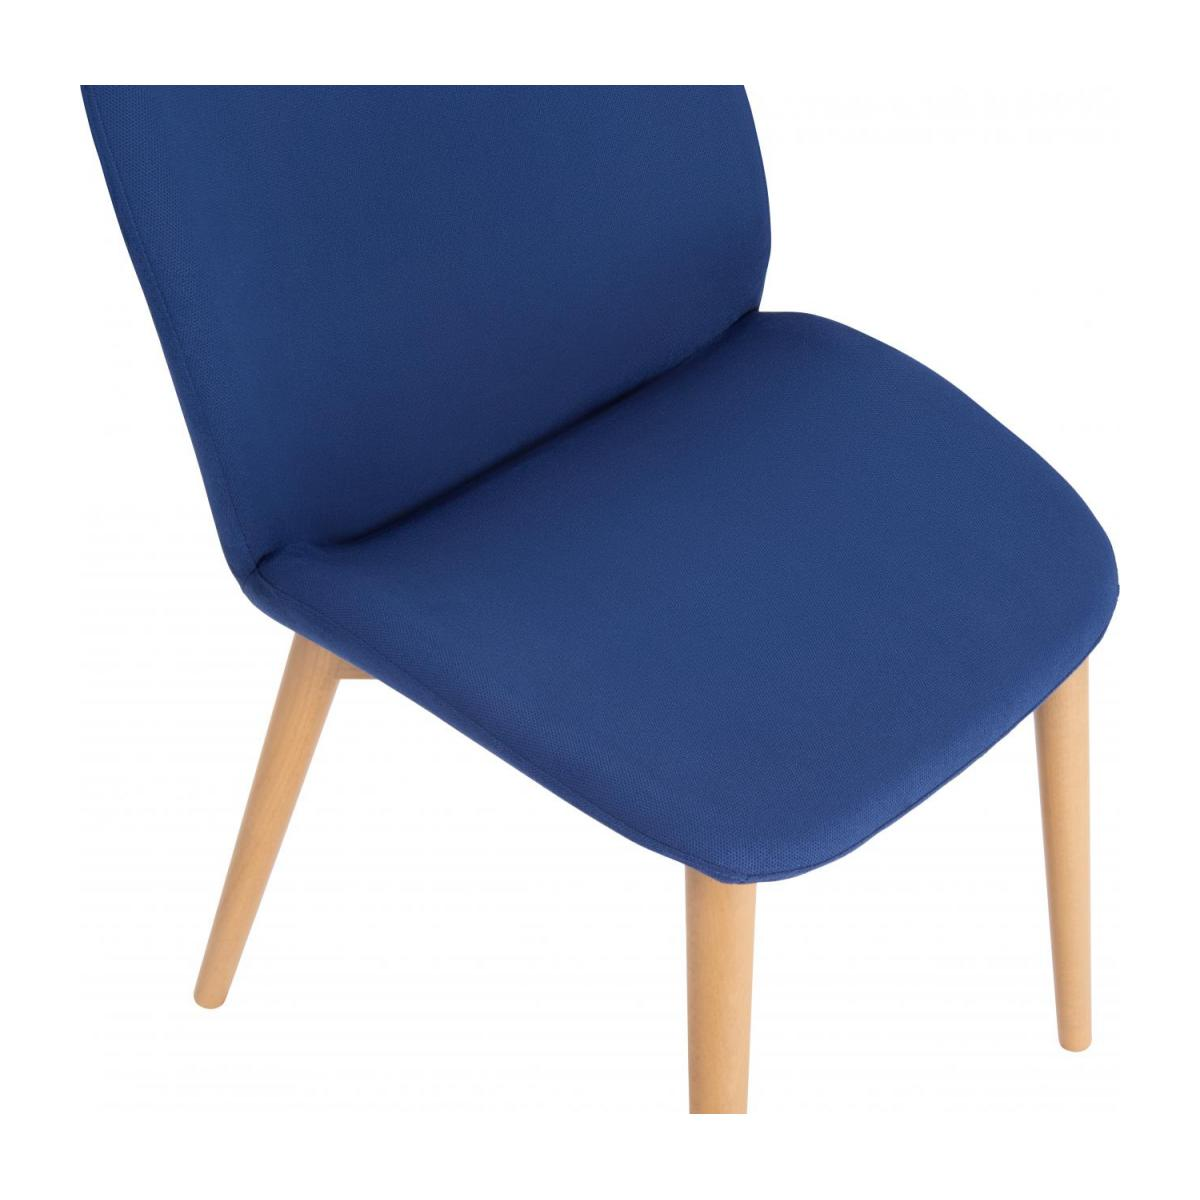 Chair with blue fabric cover and beech wood legs n°5